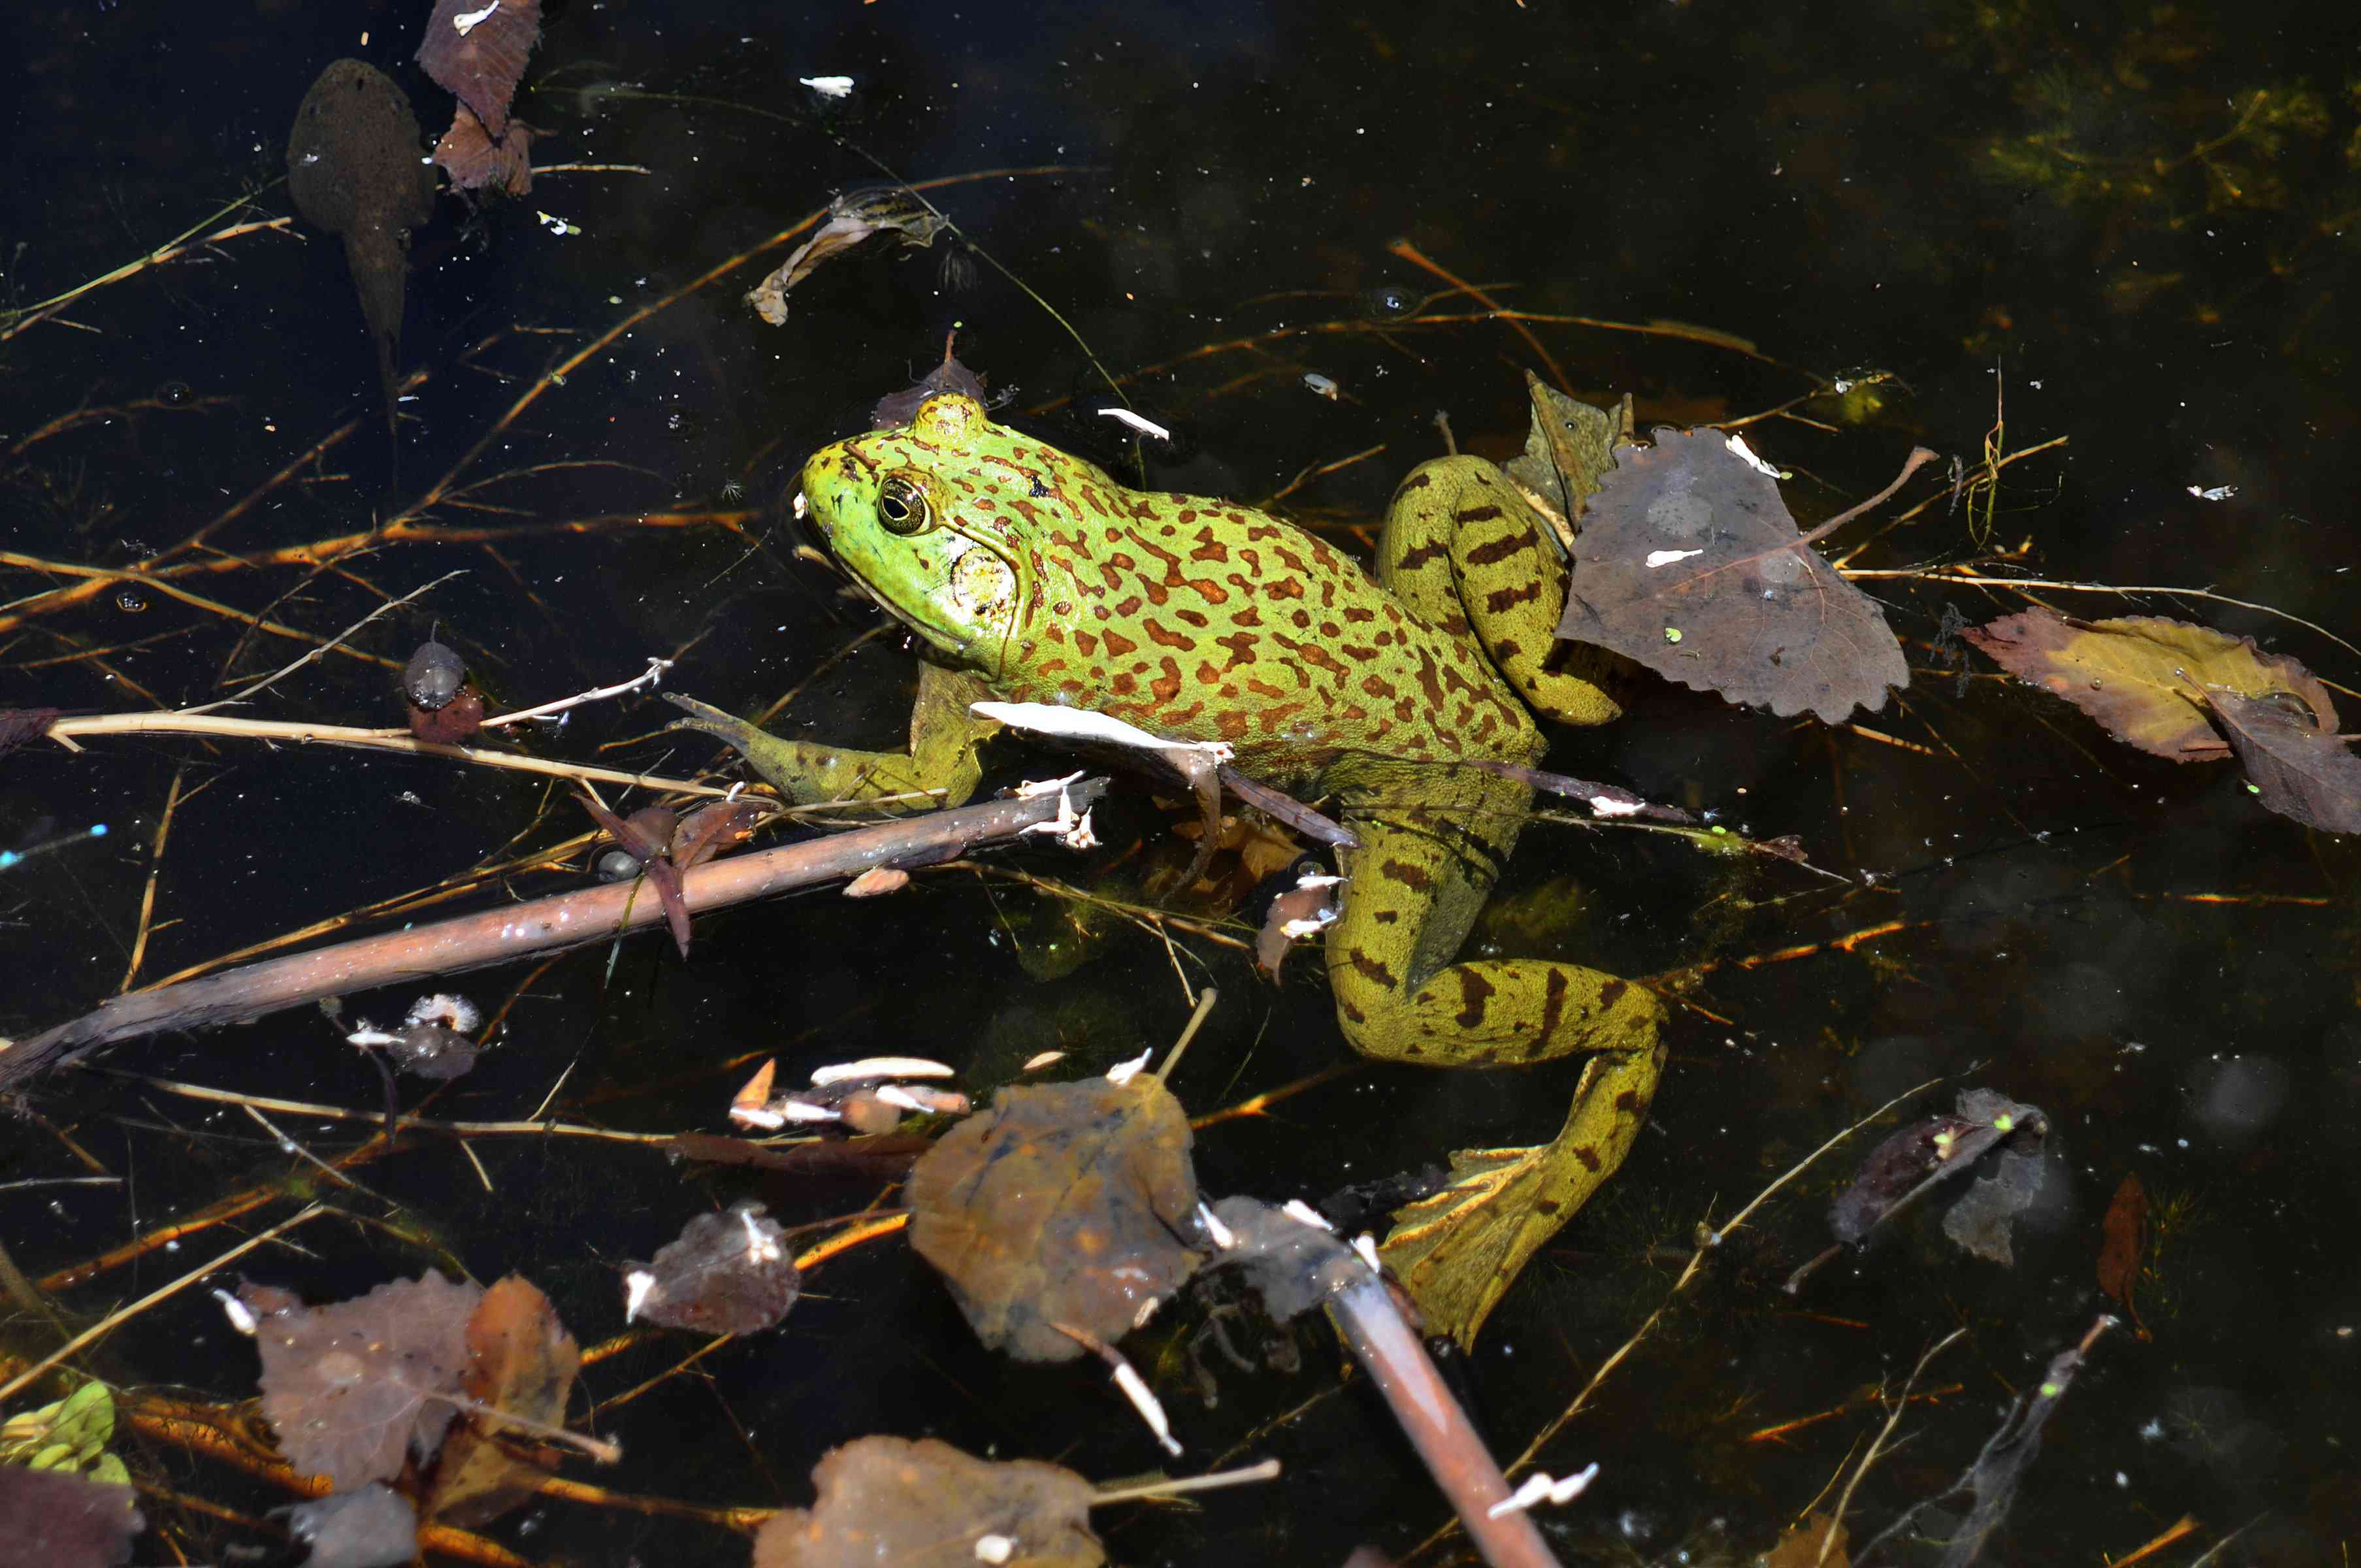 green frog with brown leopard spots swims in pond